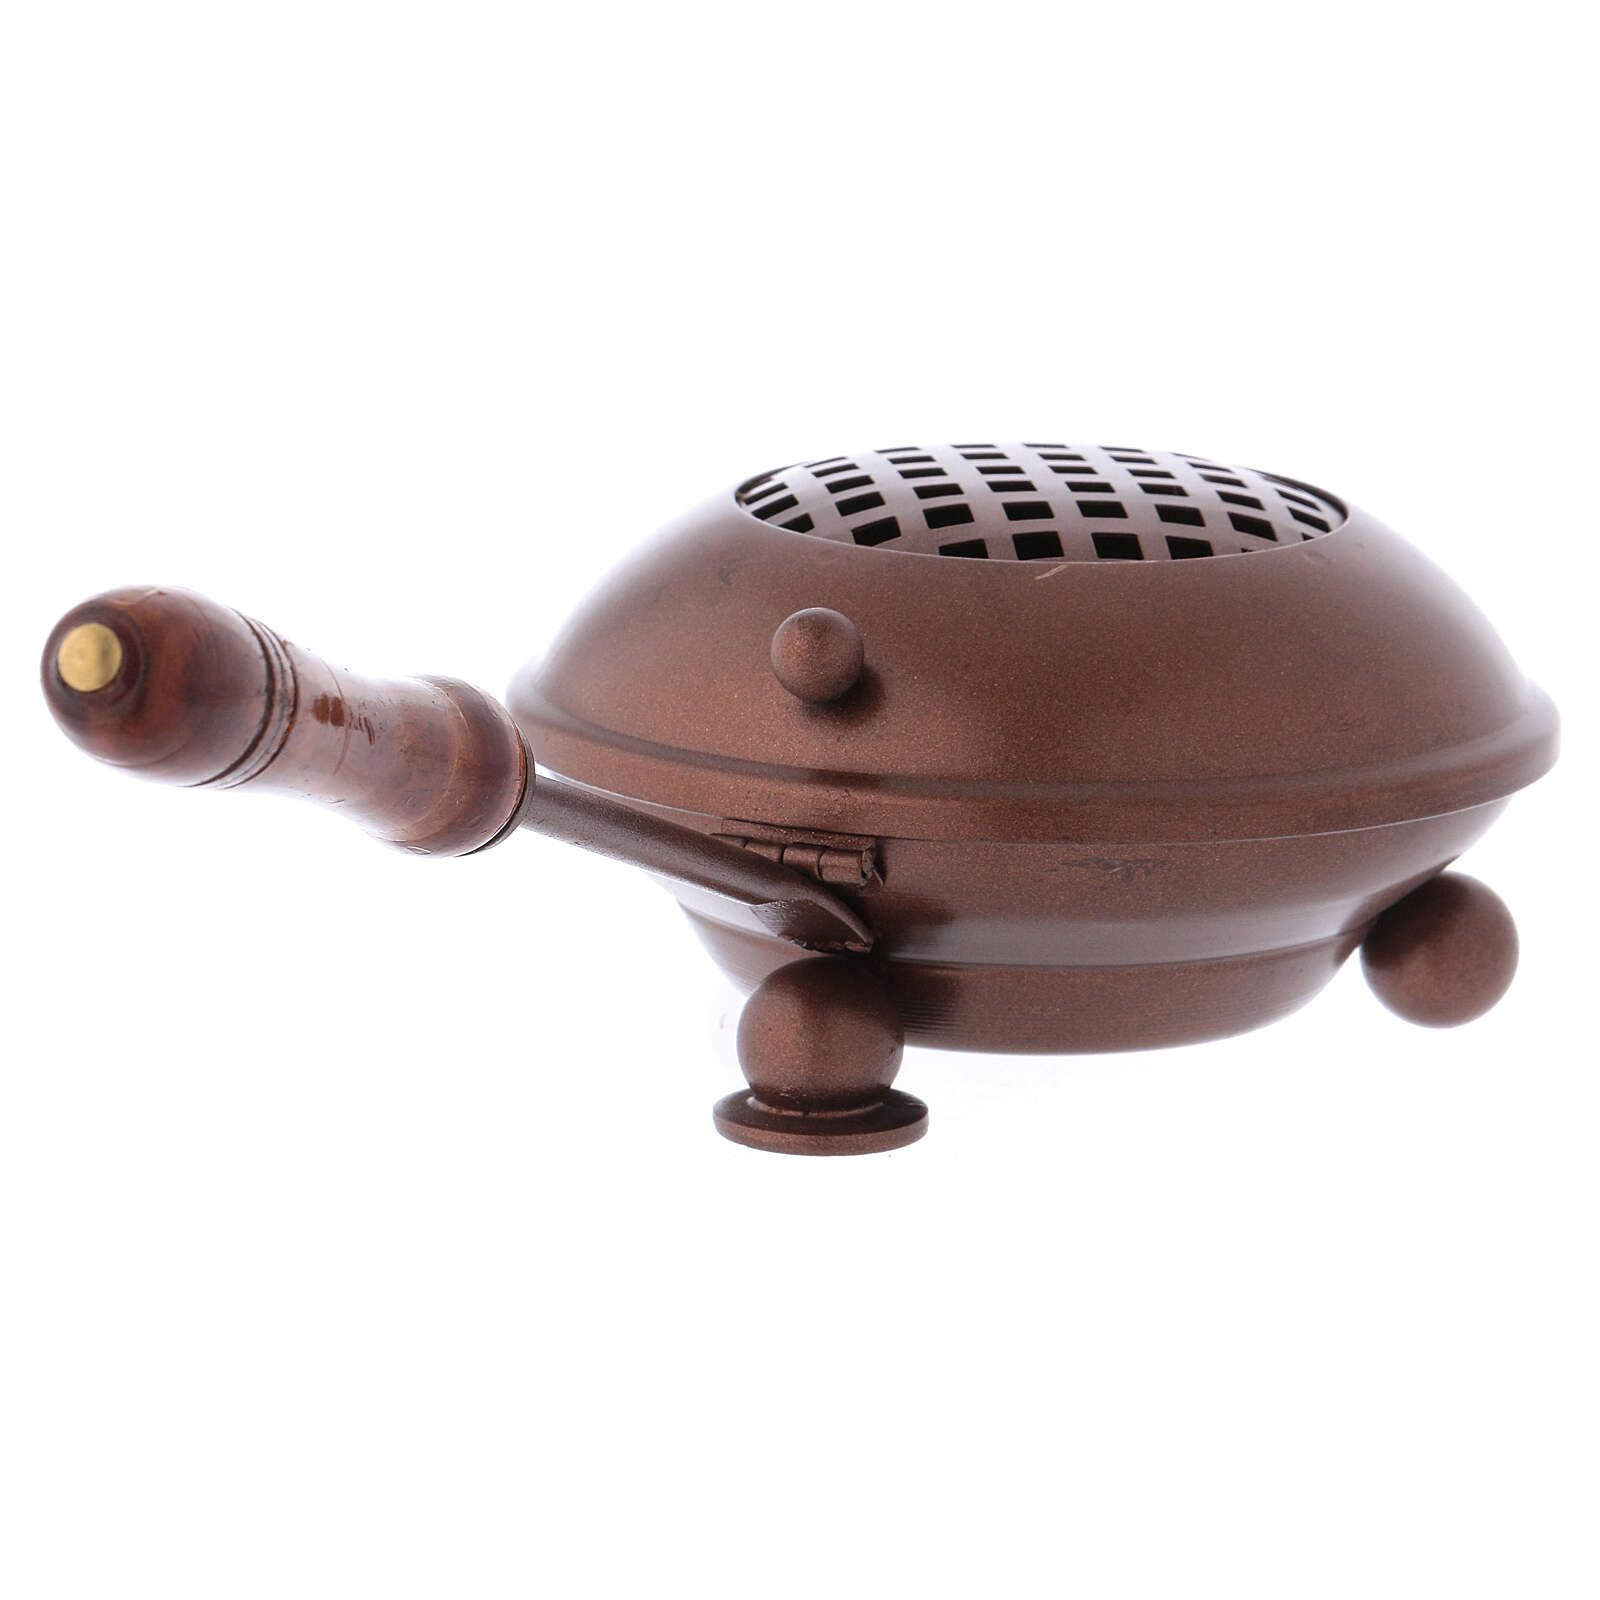 Iron incense burner with wood handle copper finish 3